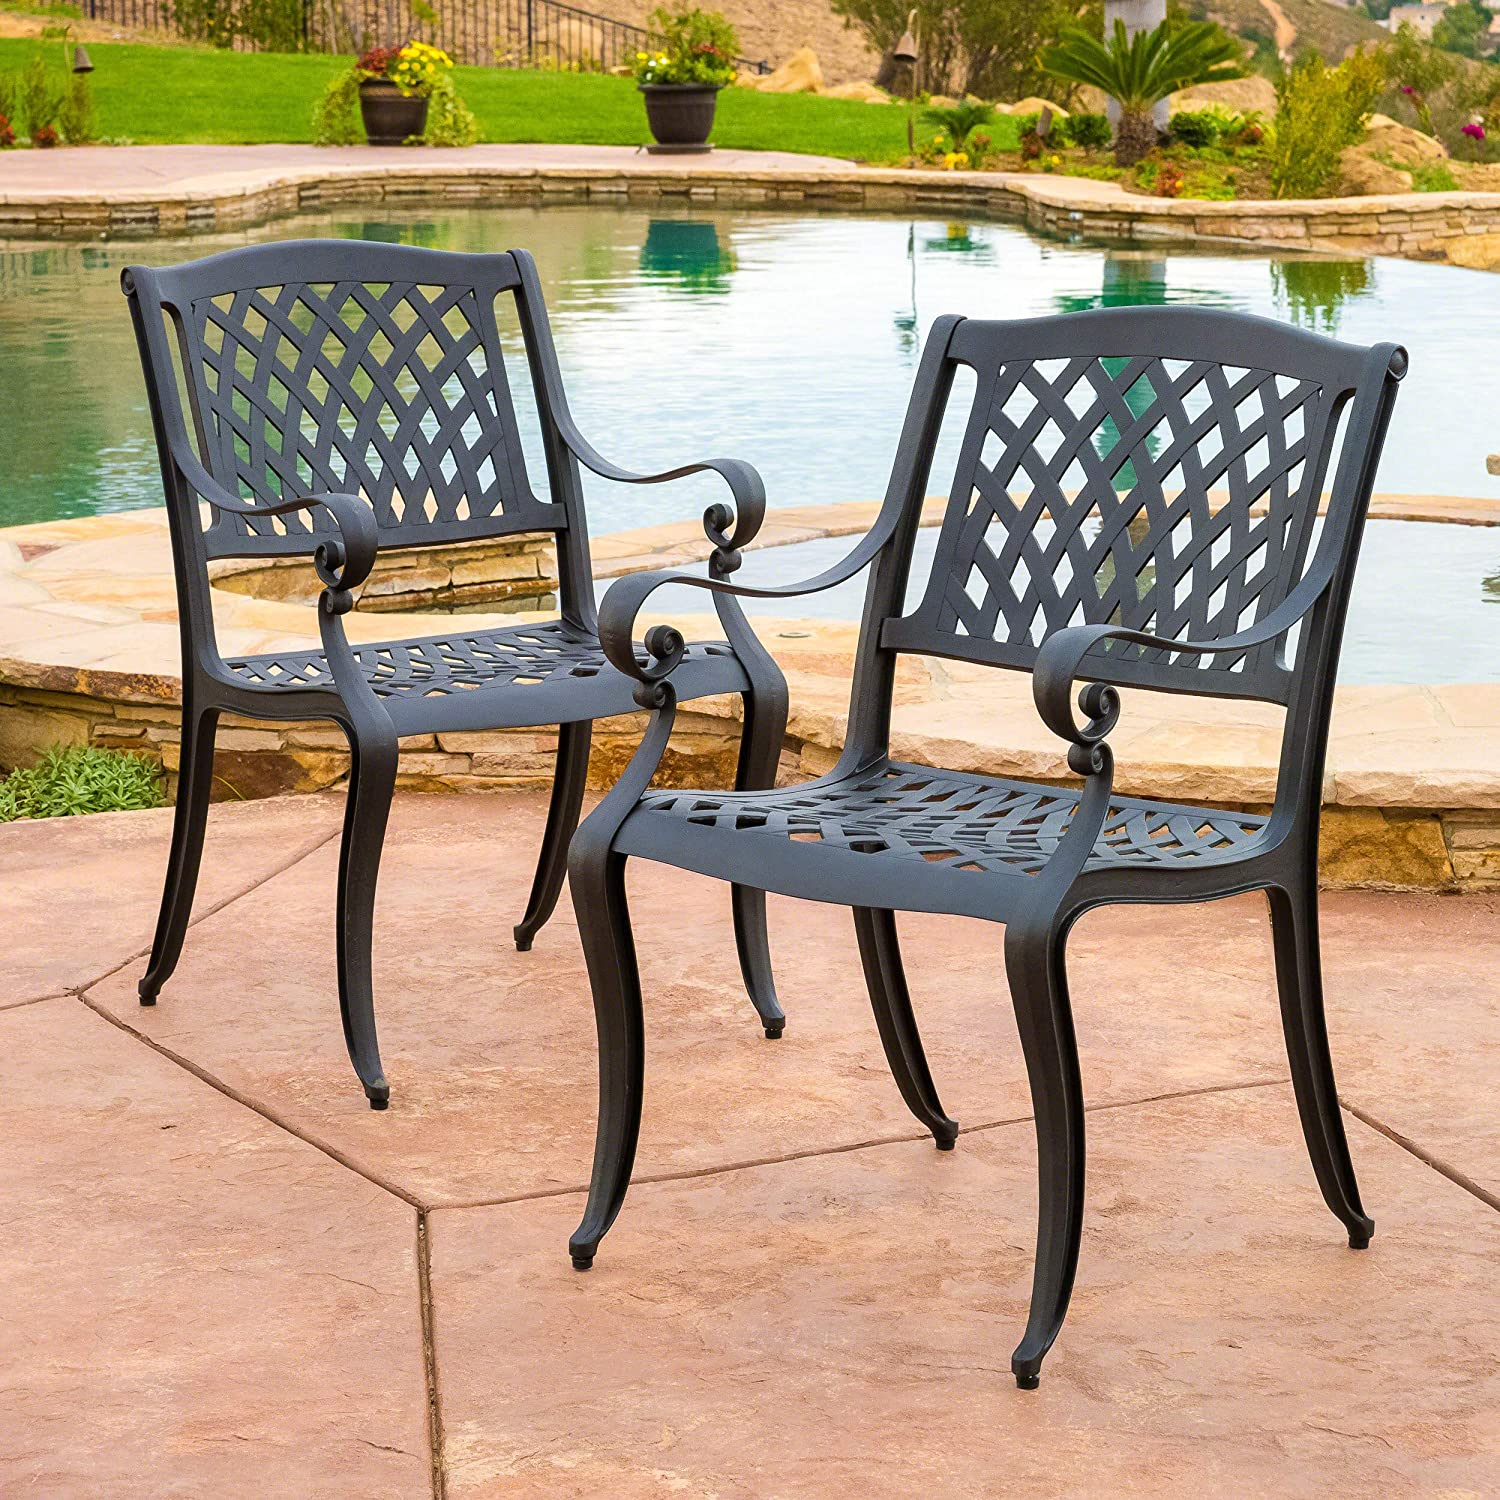 Christopher Knight Home Marietta Outdoor Cast Aluminum Dining Chairs Set of 2